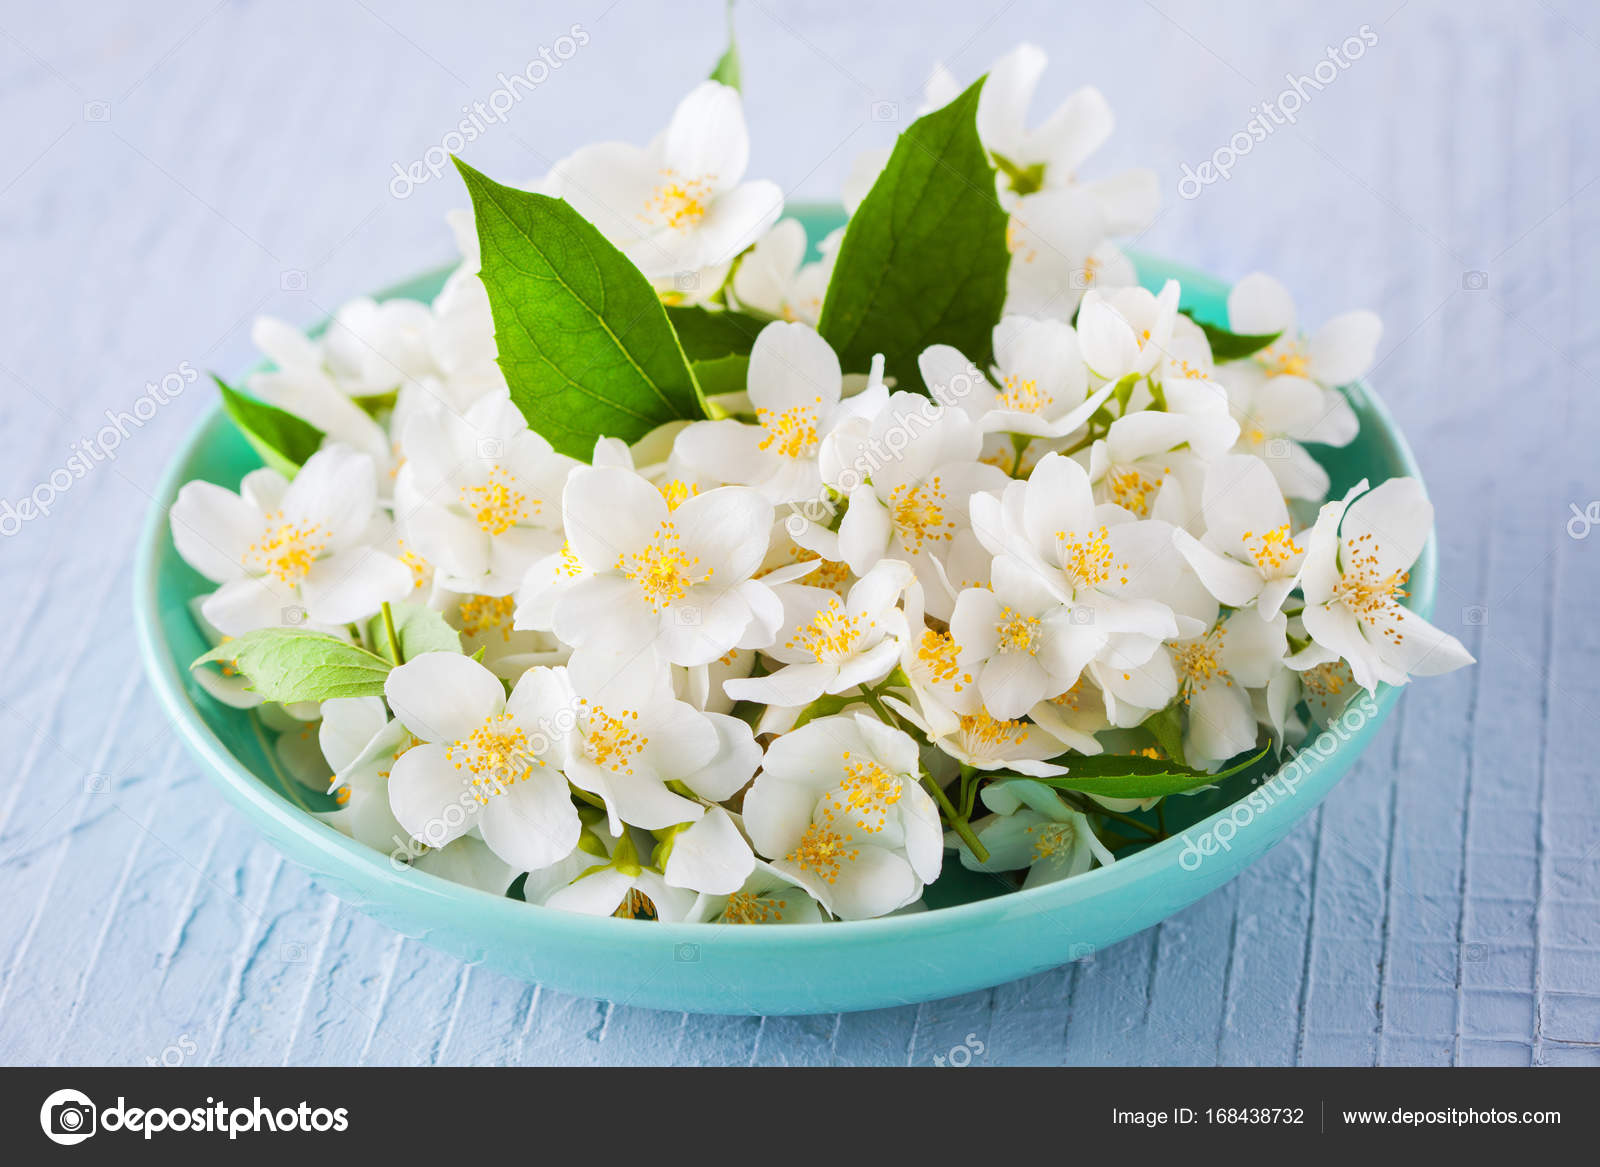 Beautiful jasmine flowers stock photo matkawariatka 168438732 beautiful jasmine flowers in blue bowl on white background photo by matkawariatka izmirmasajfo